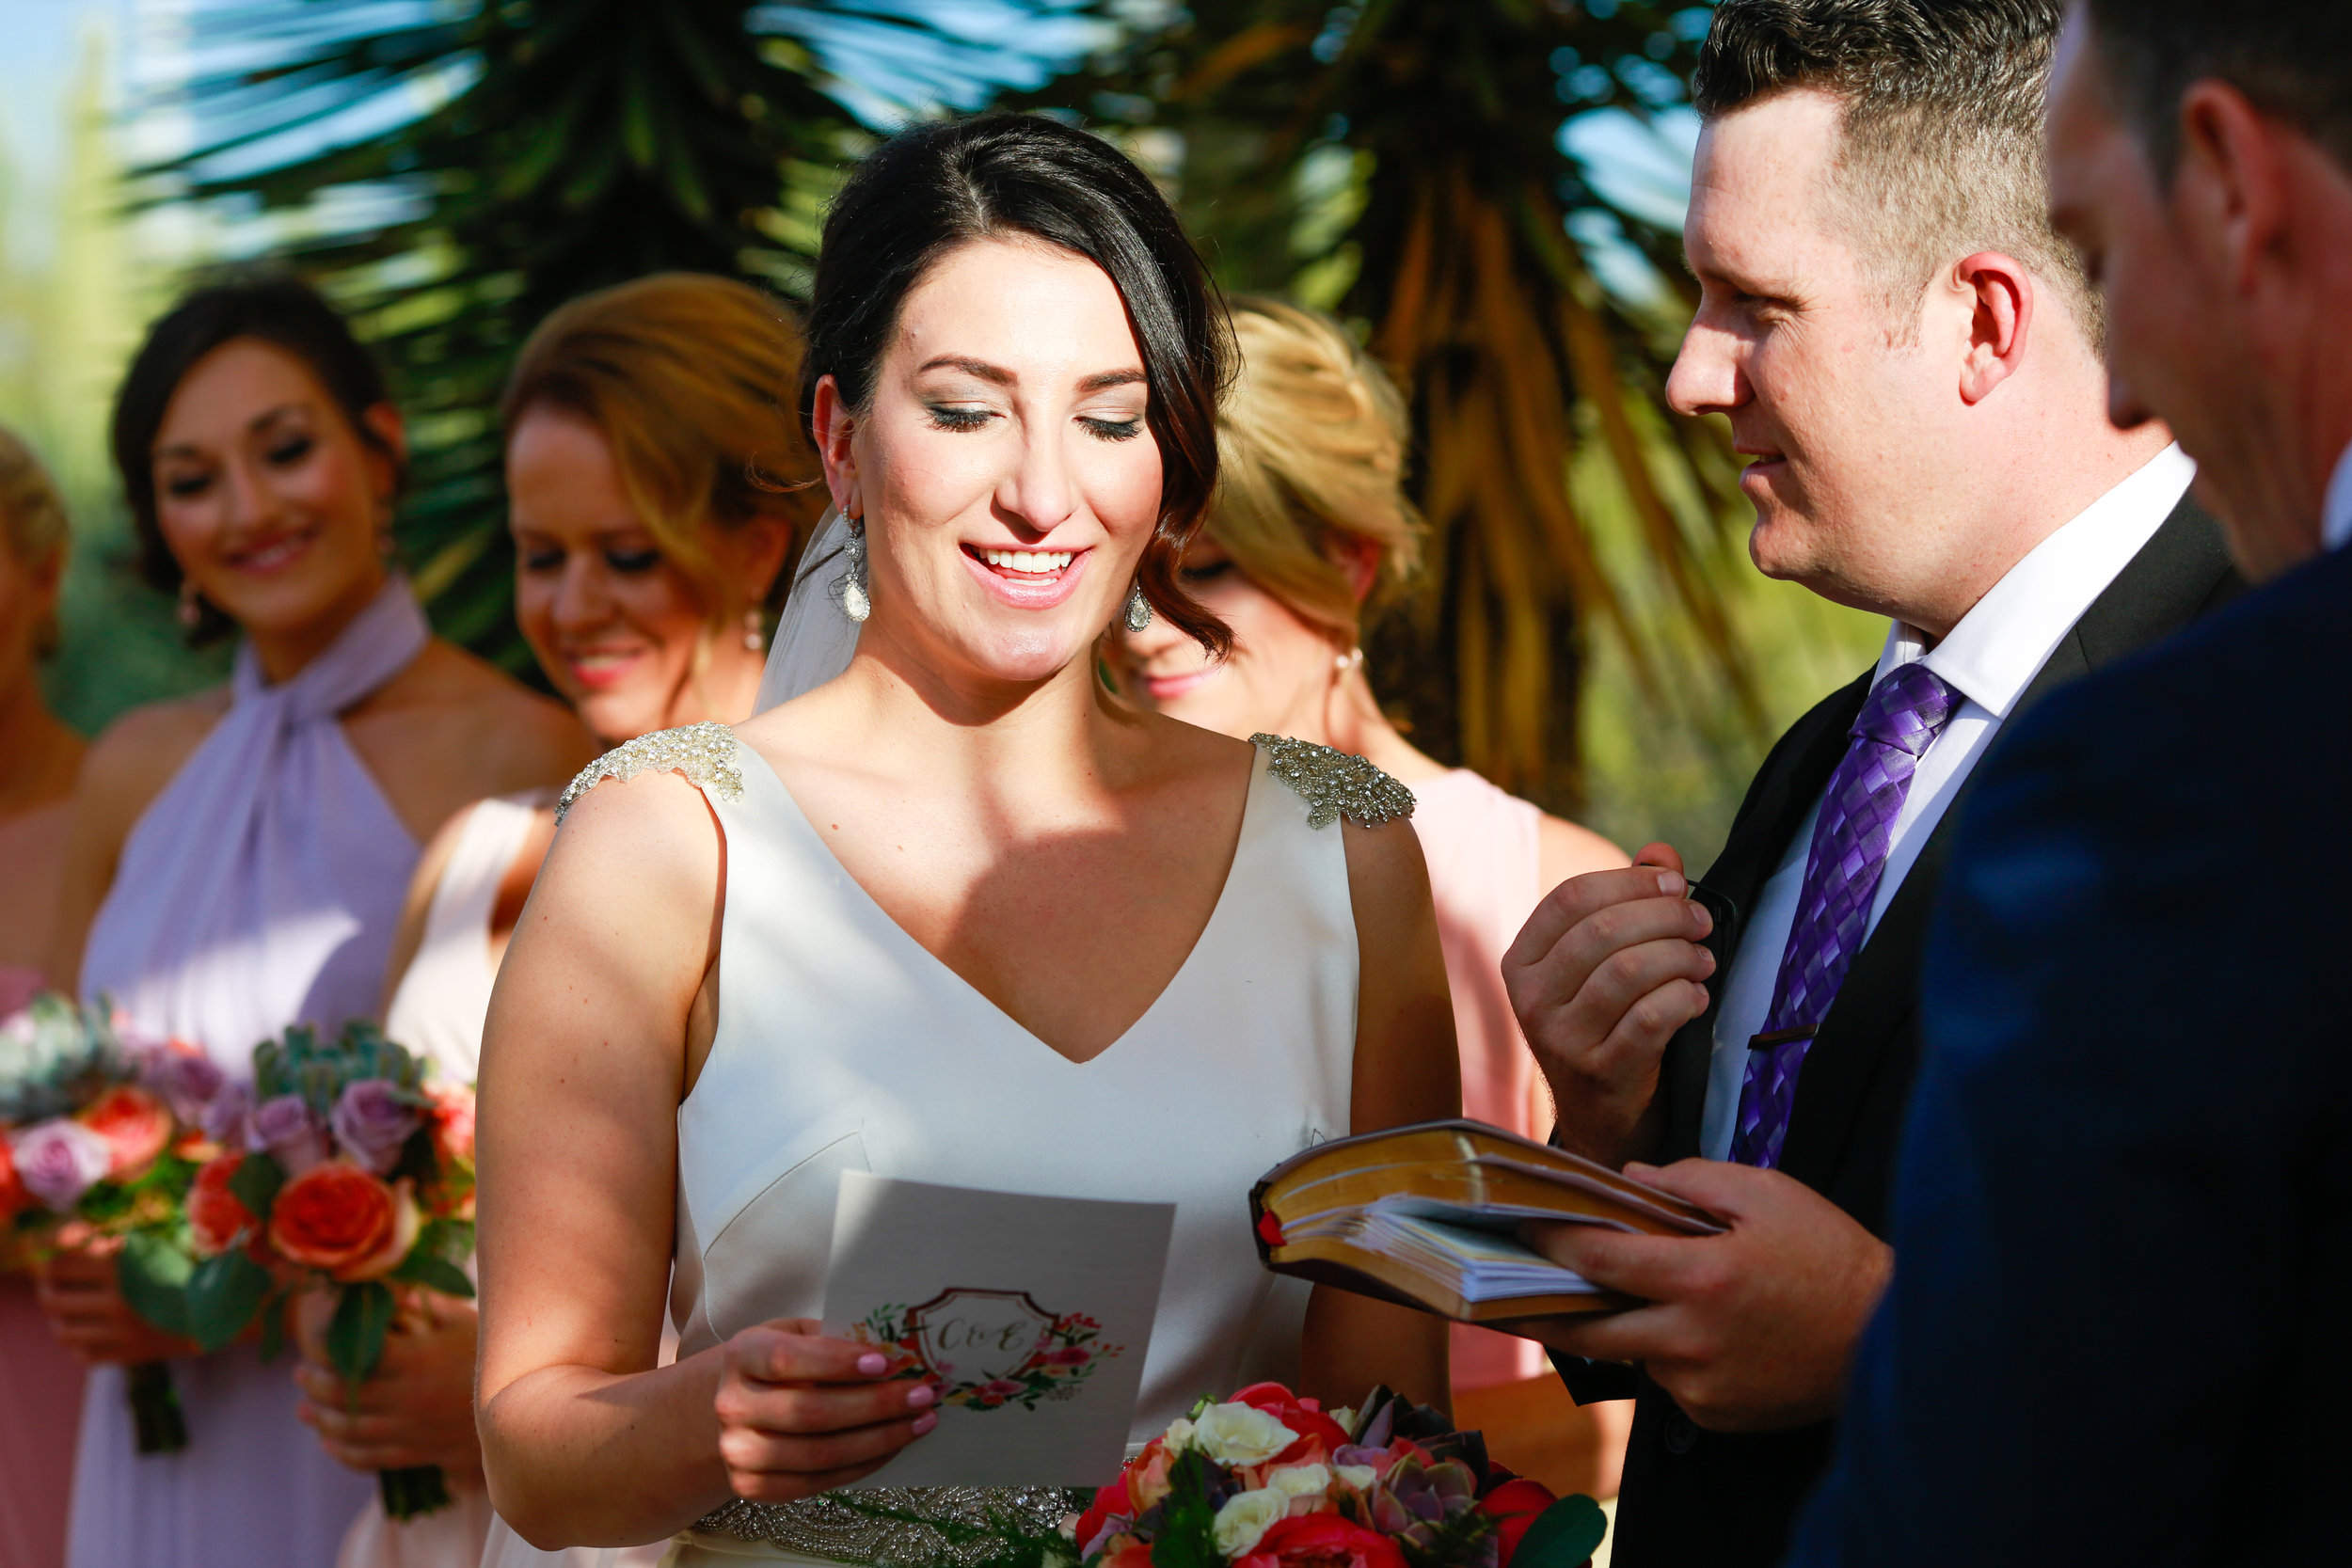 17  bride and groom vows bride and groom at the alter bride and groom exchanging vows Mod Wed Photography Life Design Events.jpg